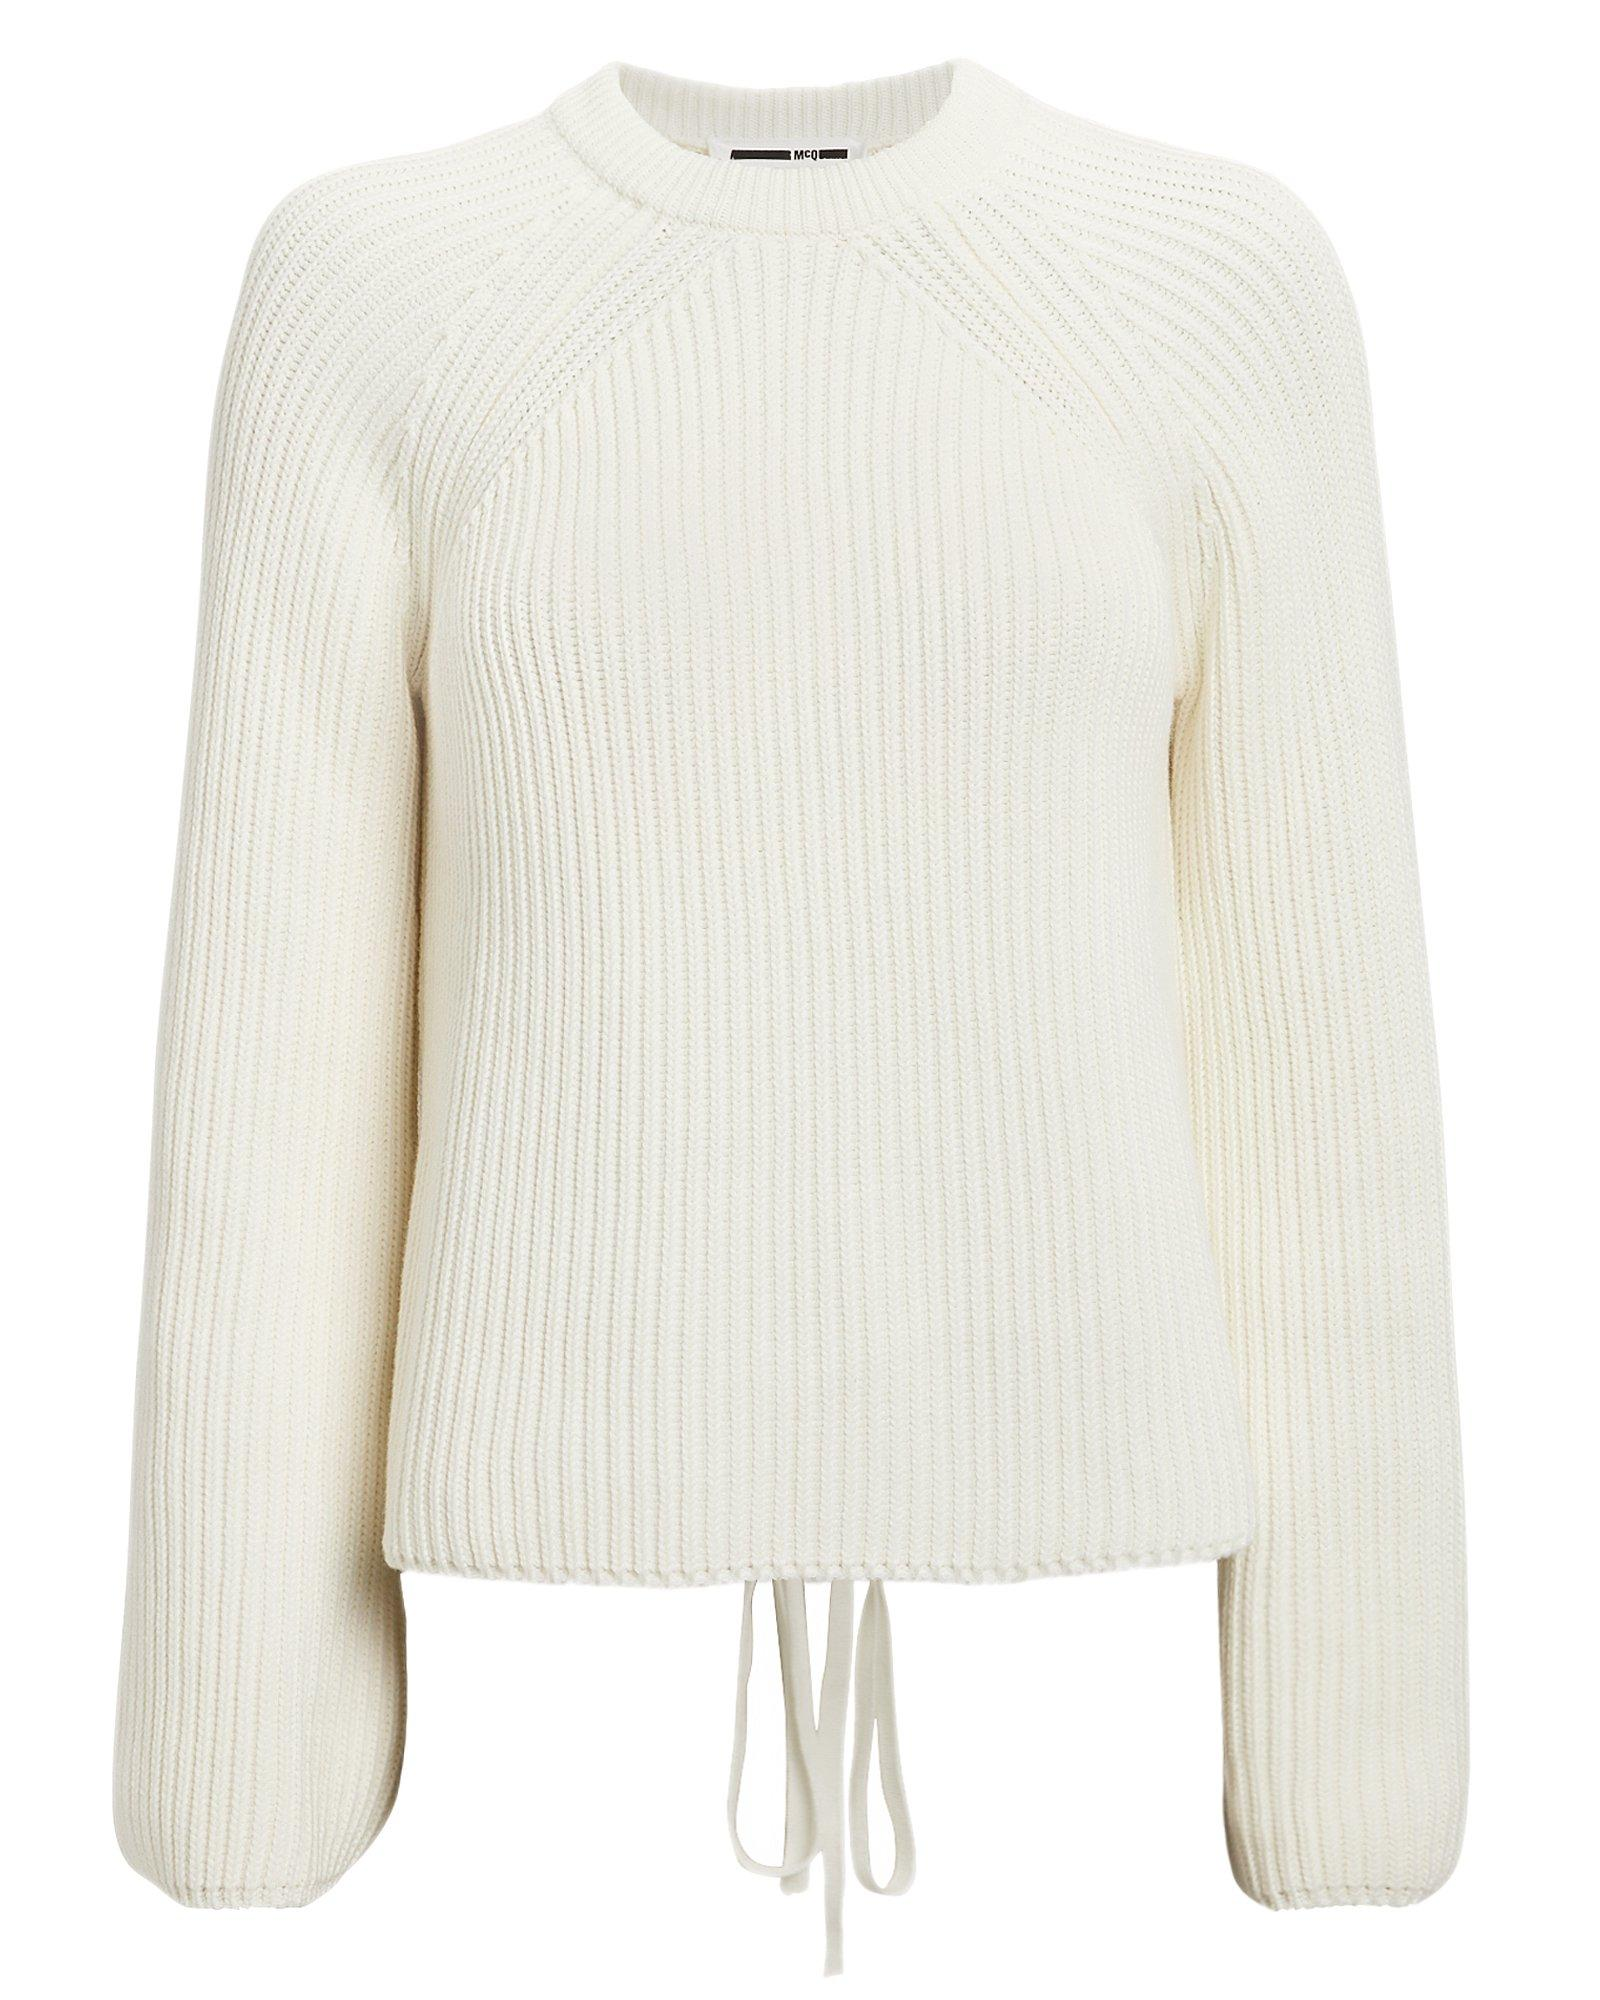 3a8039e91b0 McQ Alexander McQueen - White Ivory Lace-up Knit Sweater - Lyst. View  fullscreen